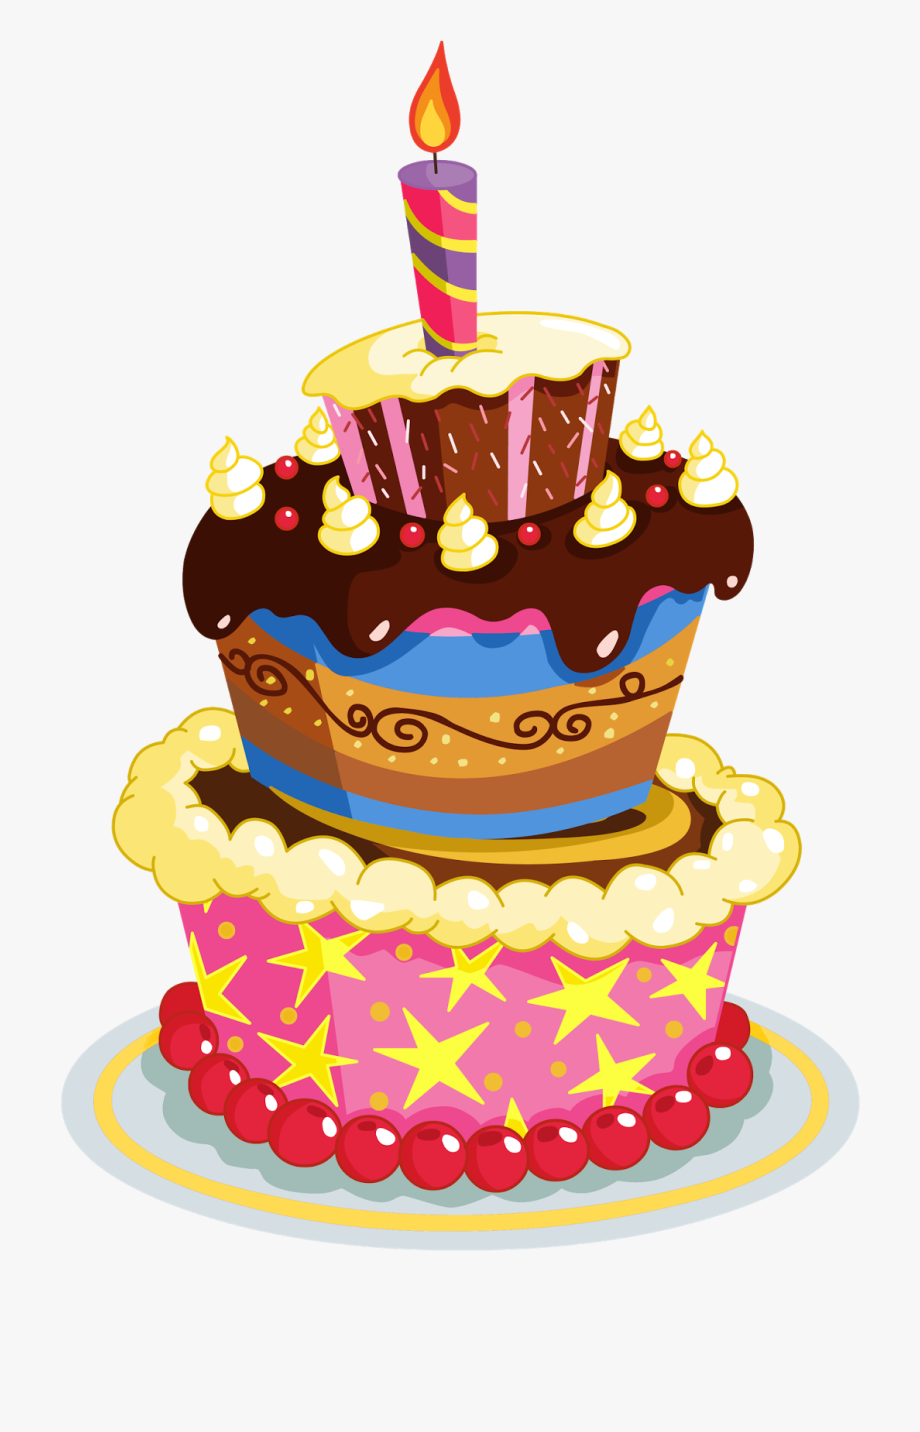 Cake clipart no background transparent download Cupcake Clipart August - Transparent Birthday Cake Clipart #743775 ... transparent download